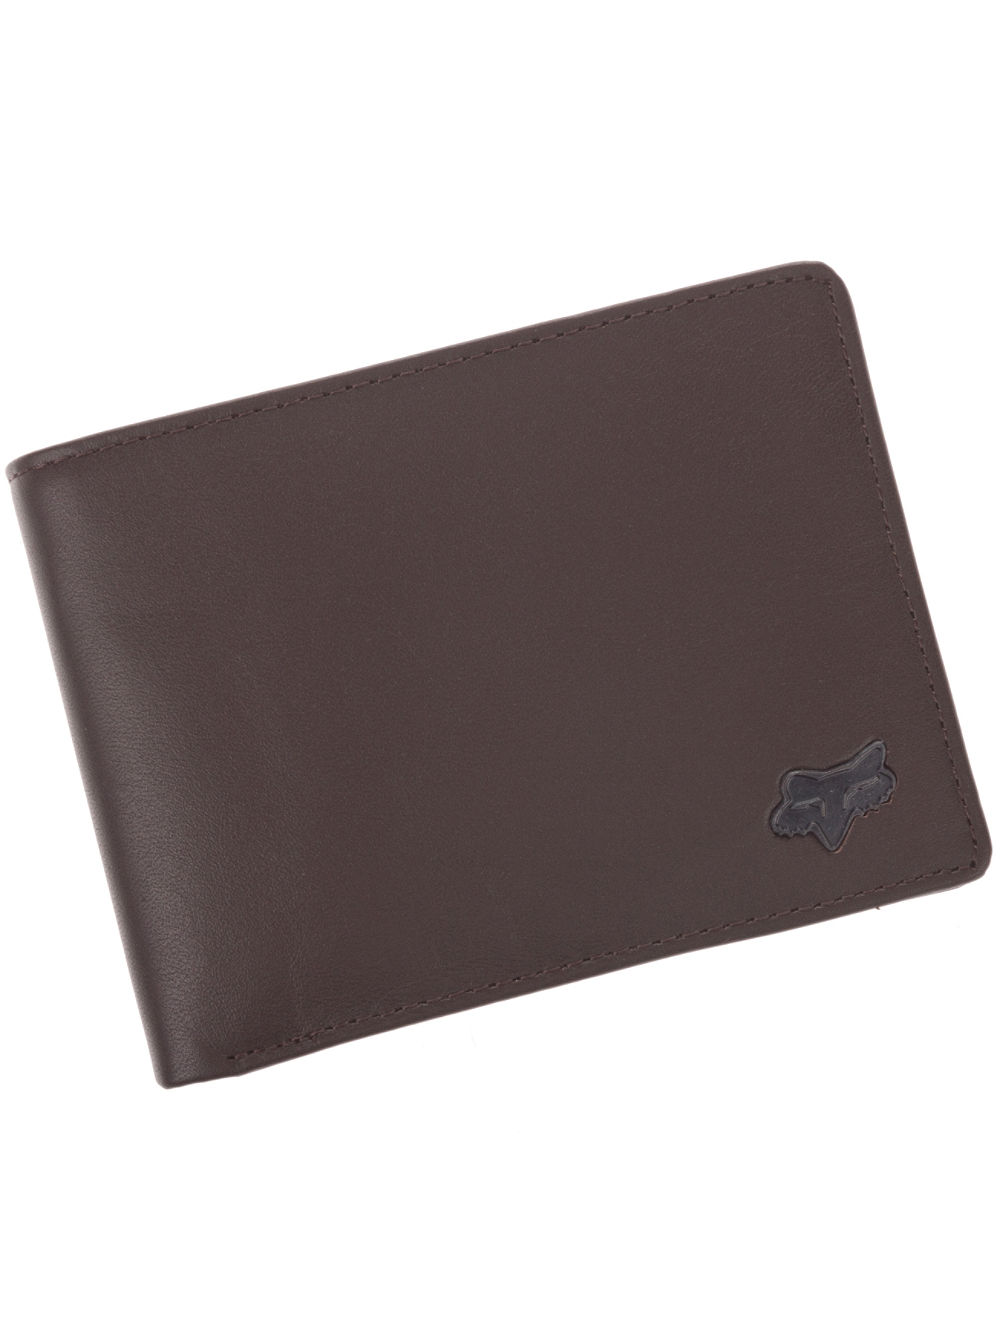 bifold-leather-intl-only-wallet